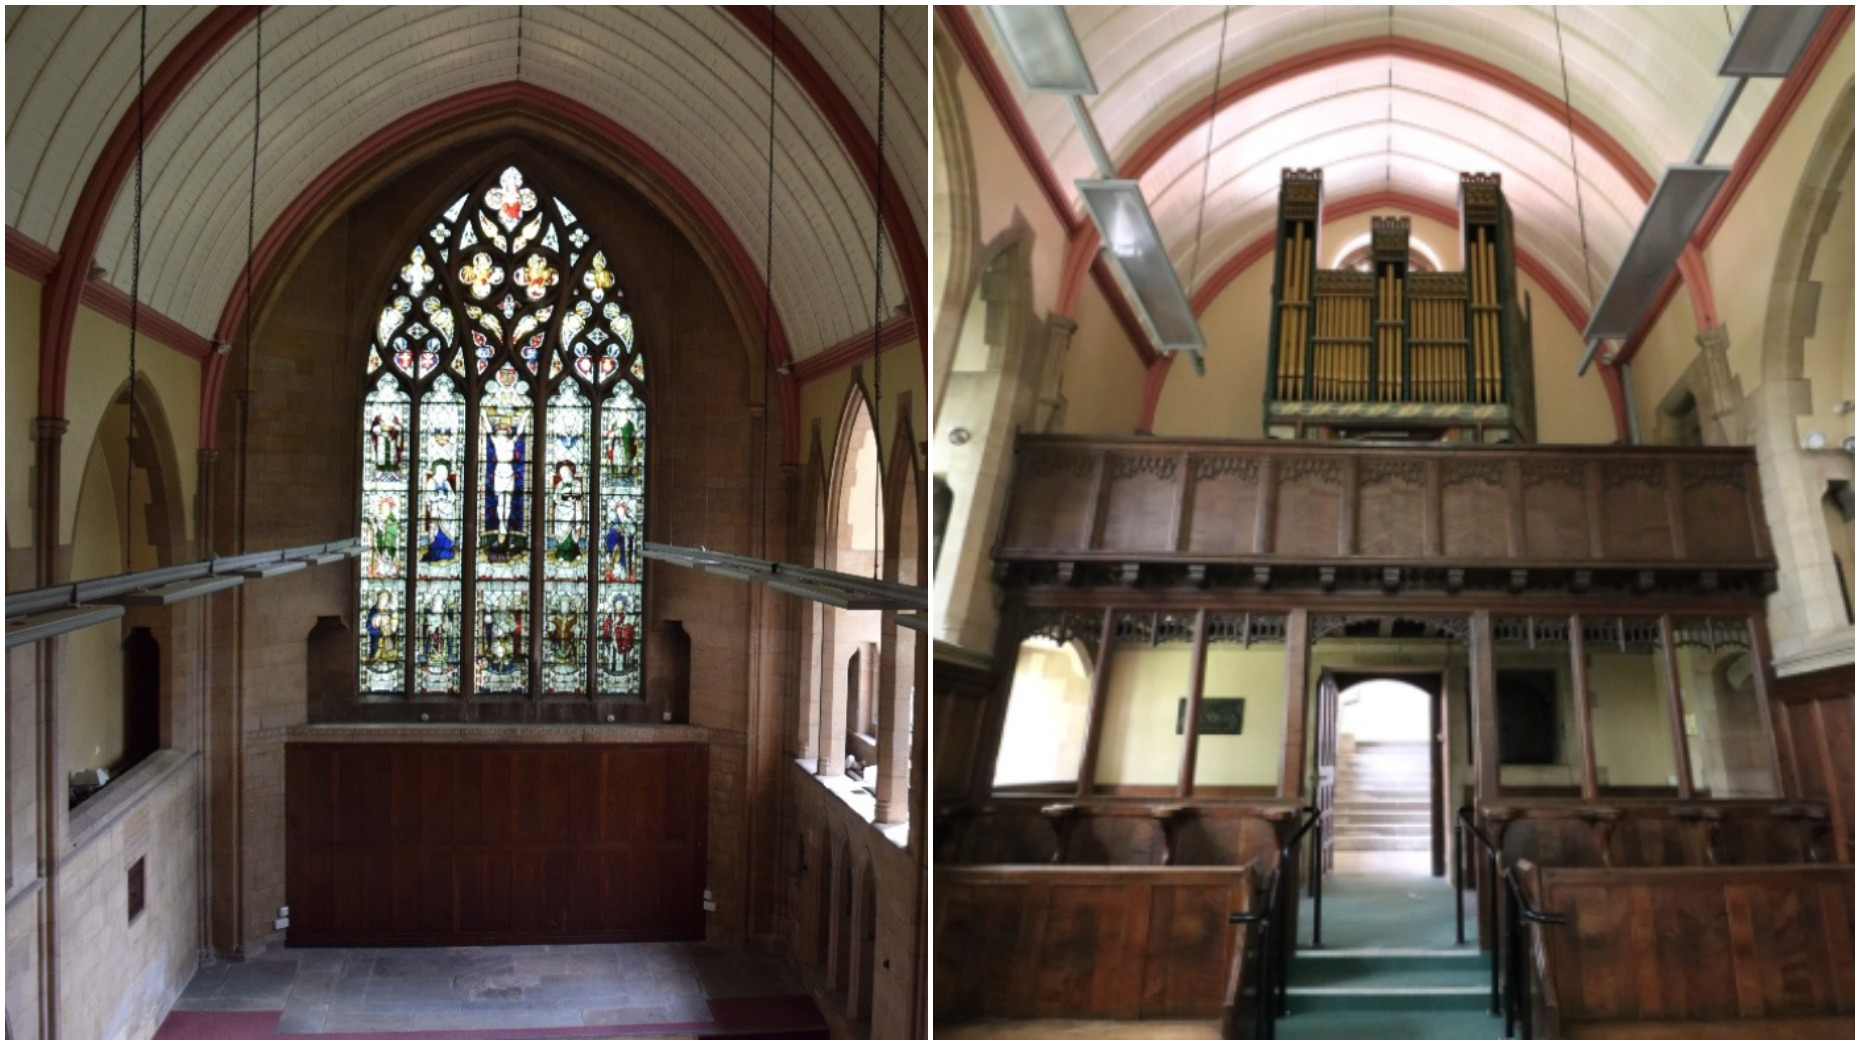 The chapel would be turned into a single luxury property.